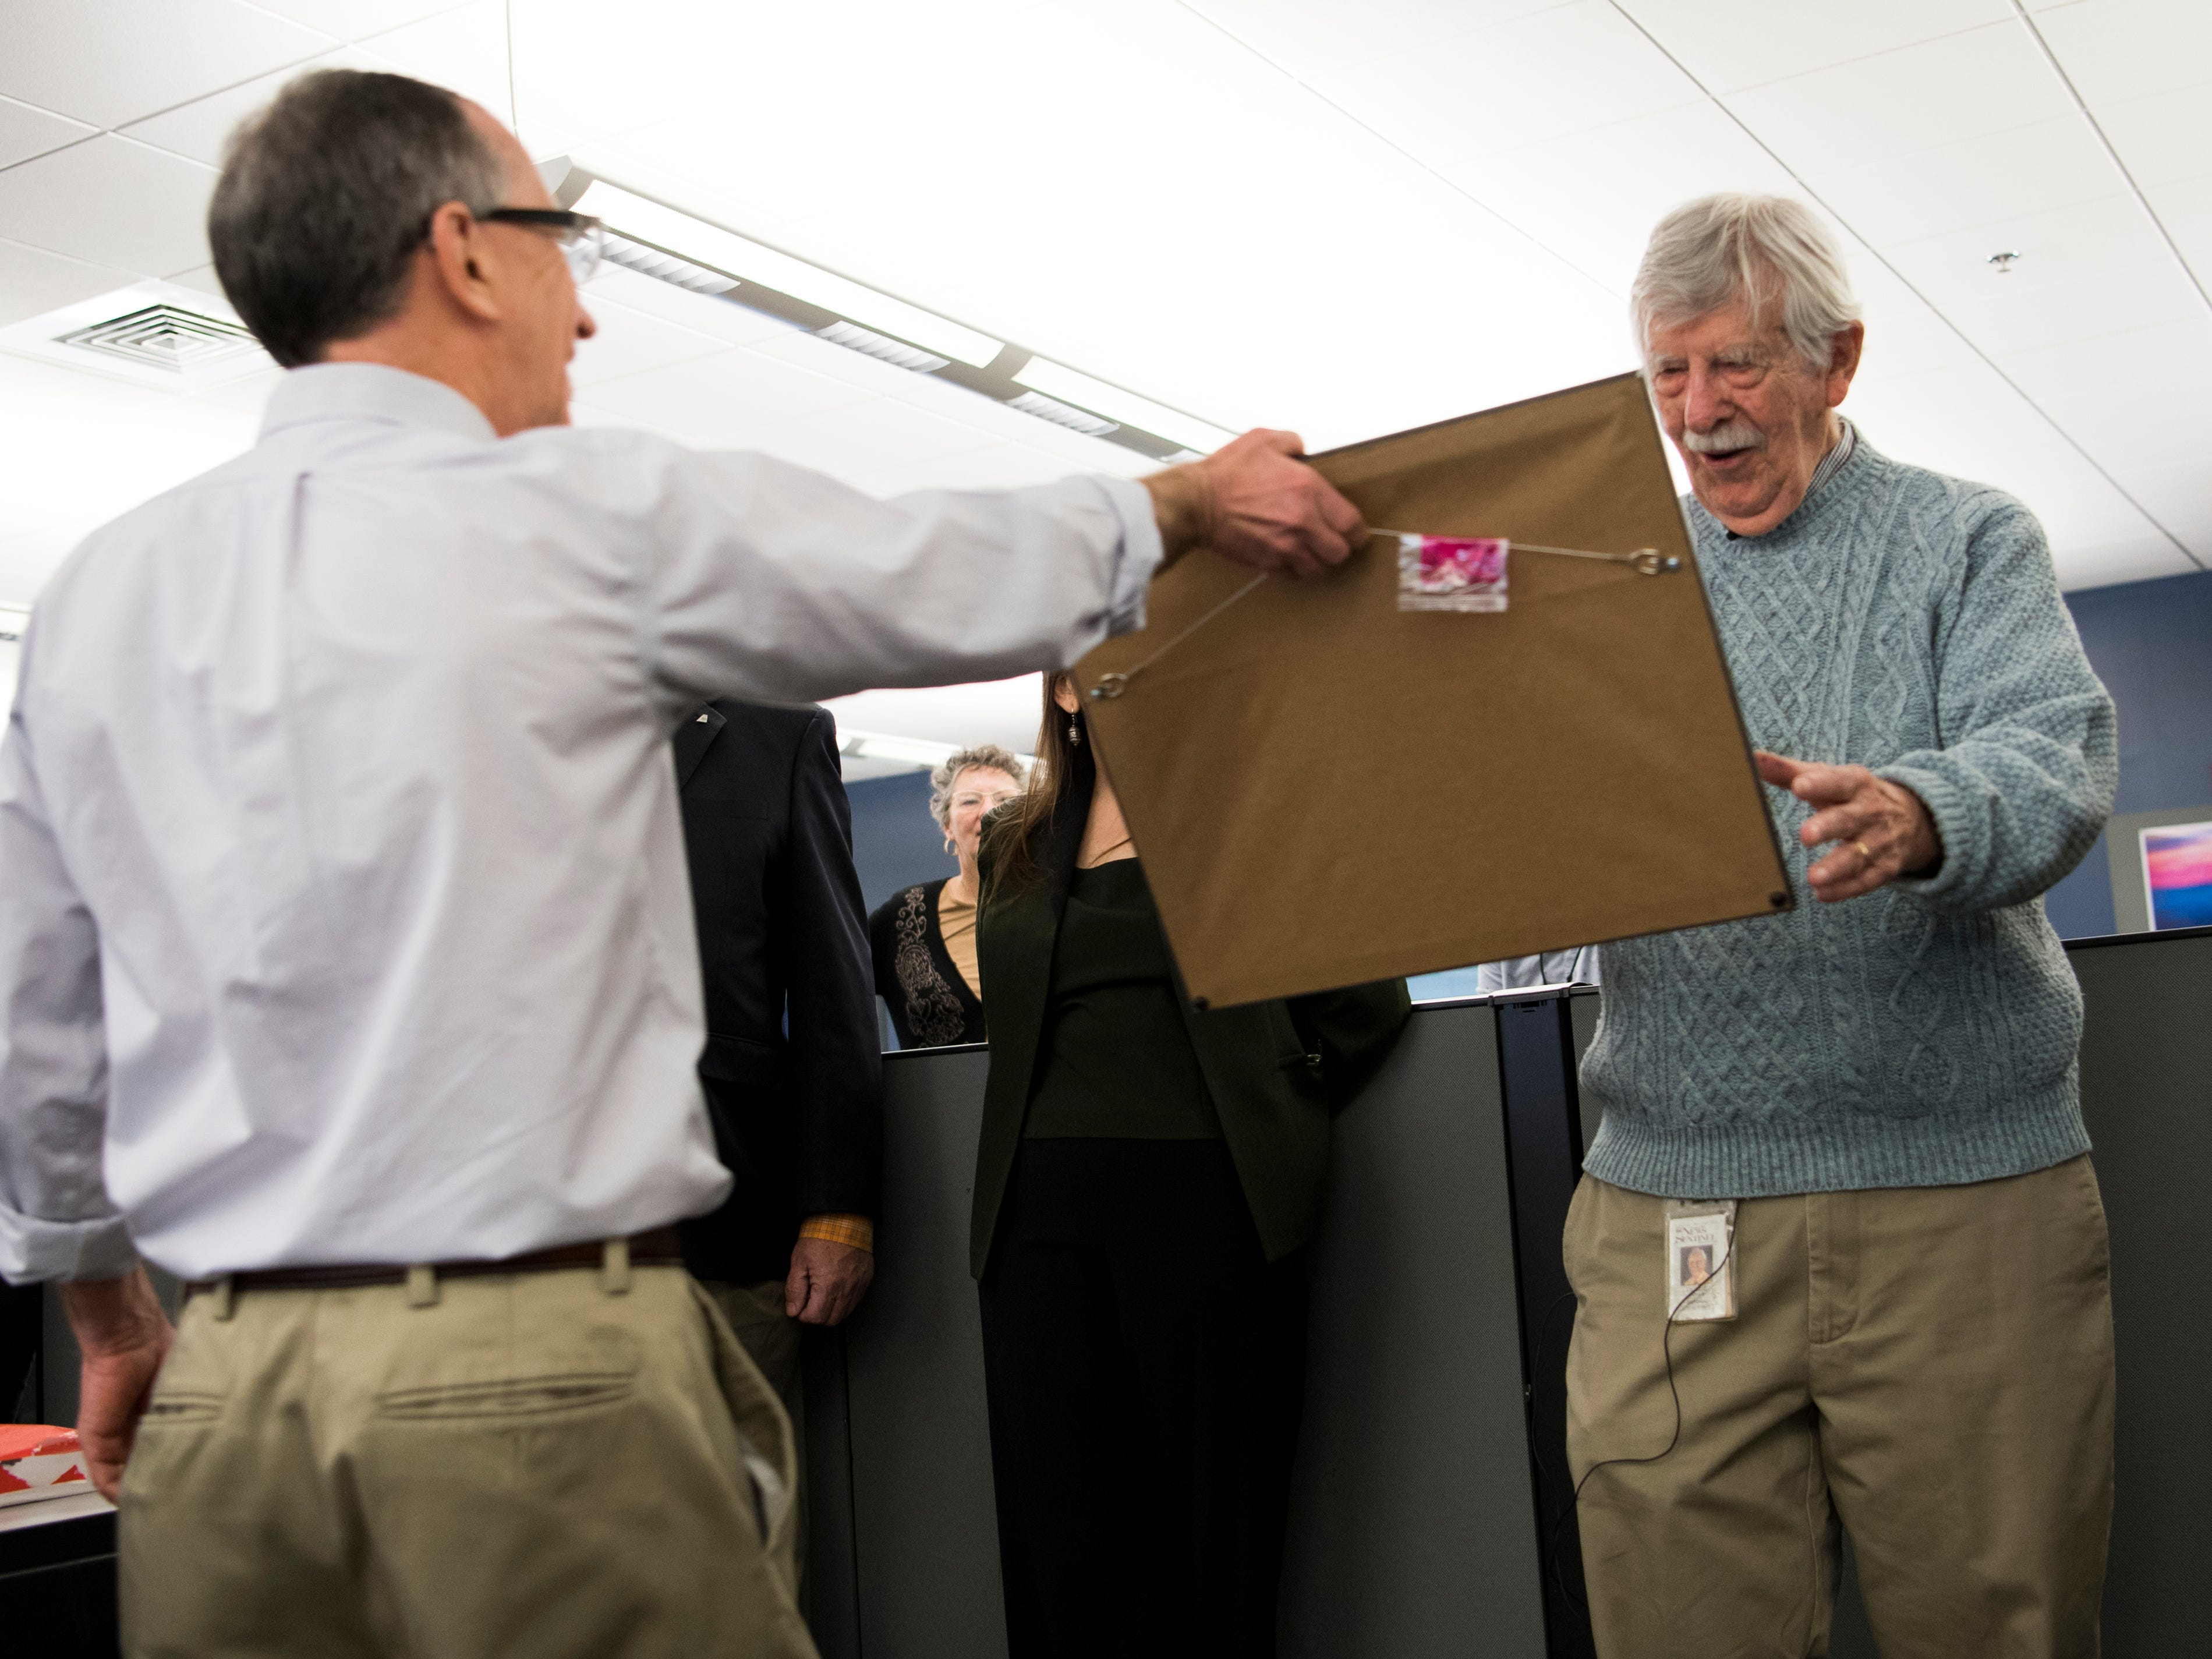 News Sentinel Executive Editor Jack McElroy hands cartoonist Charlie Daniel a custom cartoon draw for Daniel during a celebration for the retirements of executive editor Jack McElroy and cartoonist Charlie Daniel in the News Sentinel newsroom on Friday, February 1, 2019.